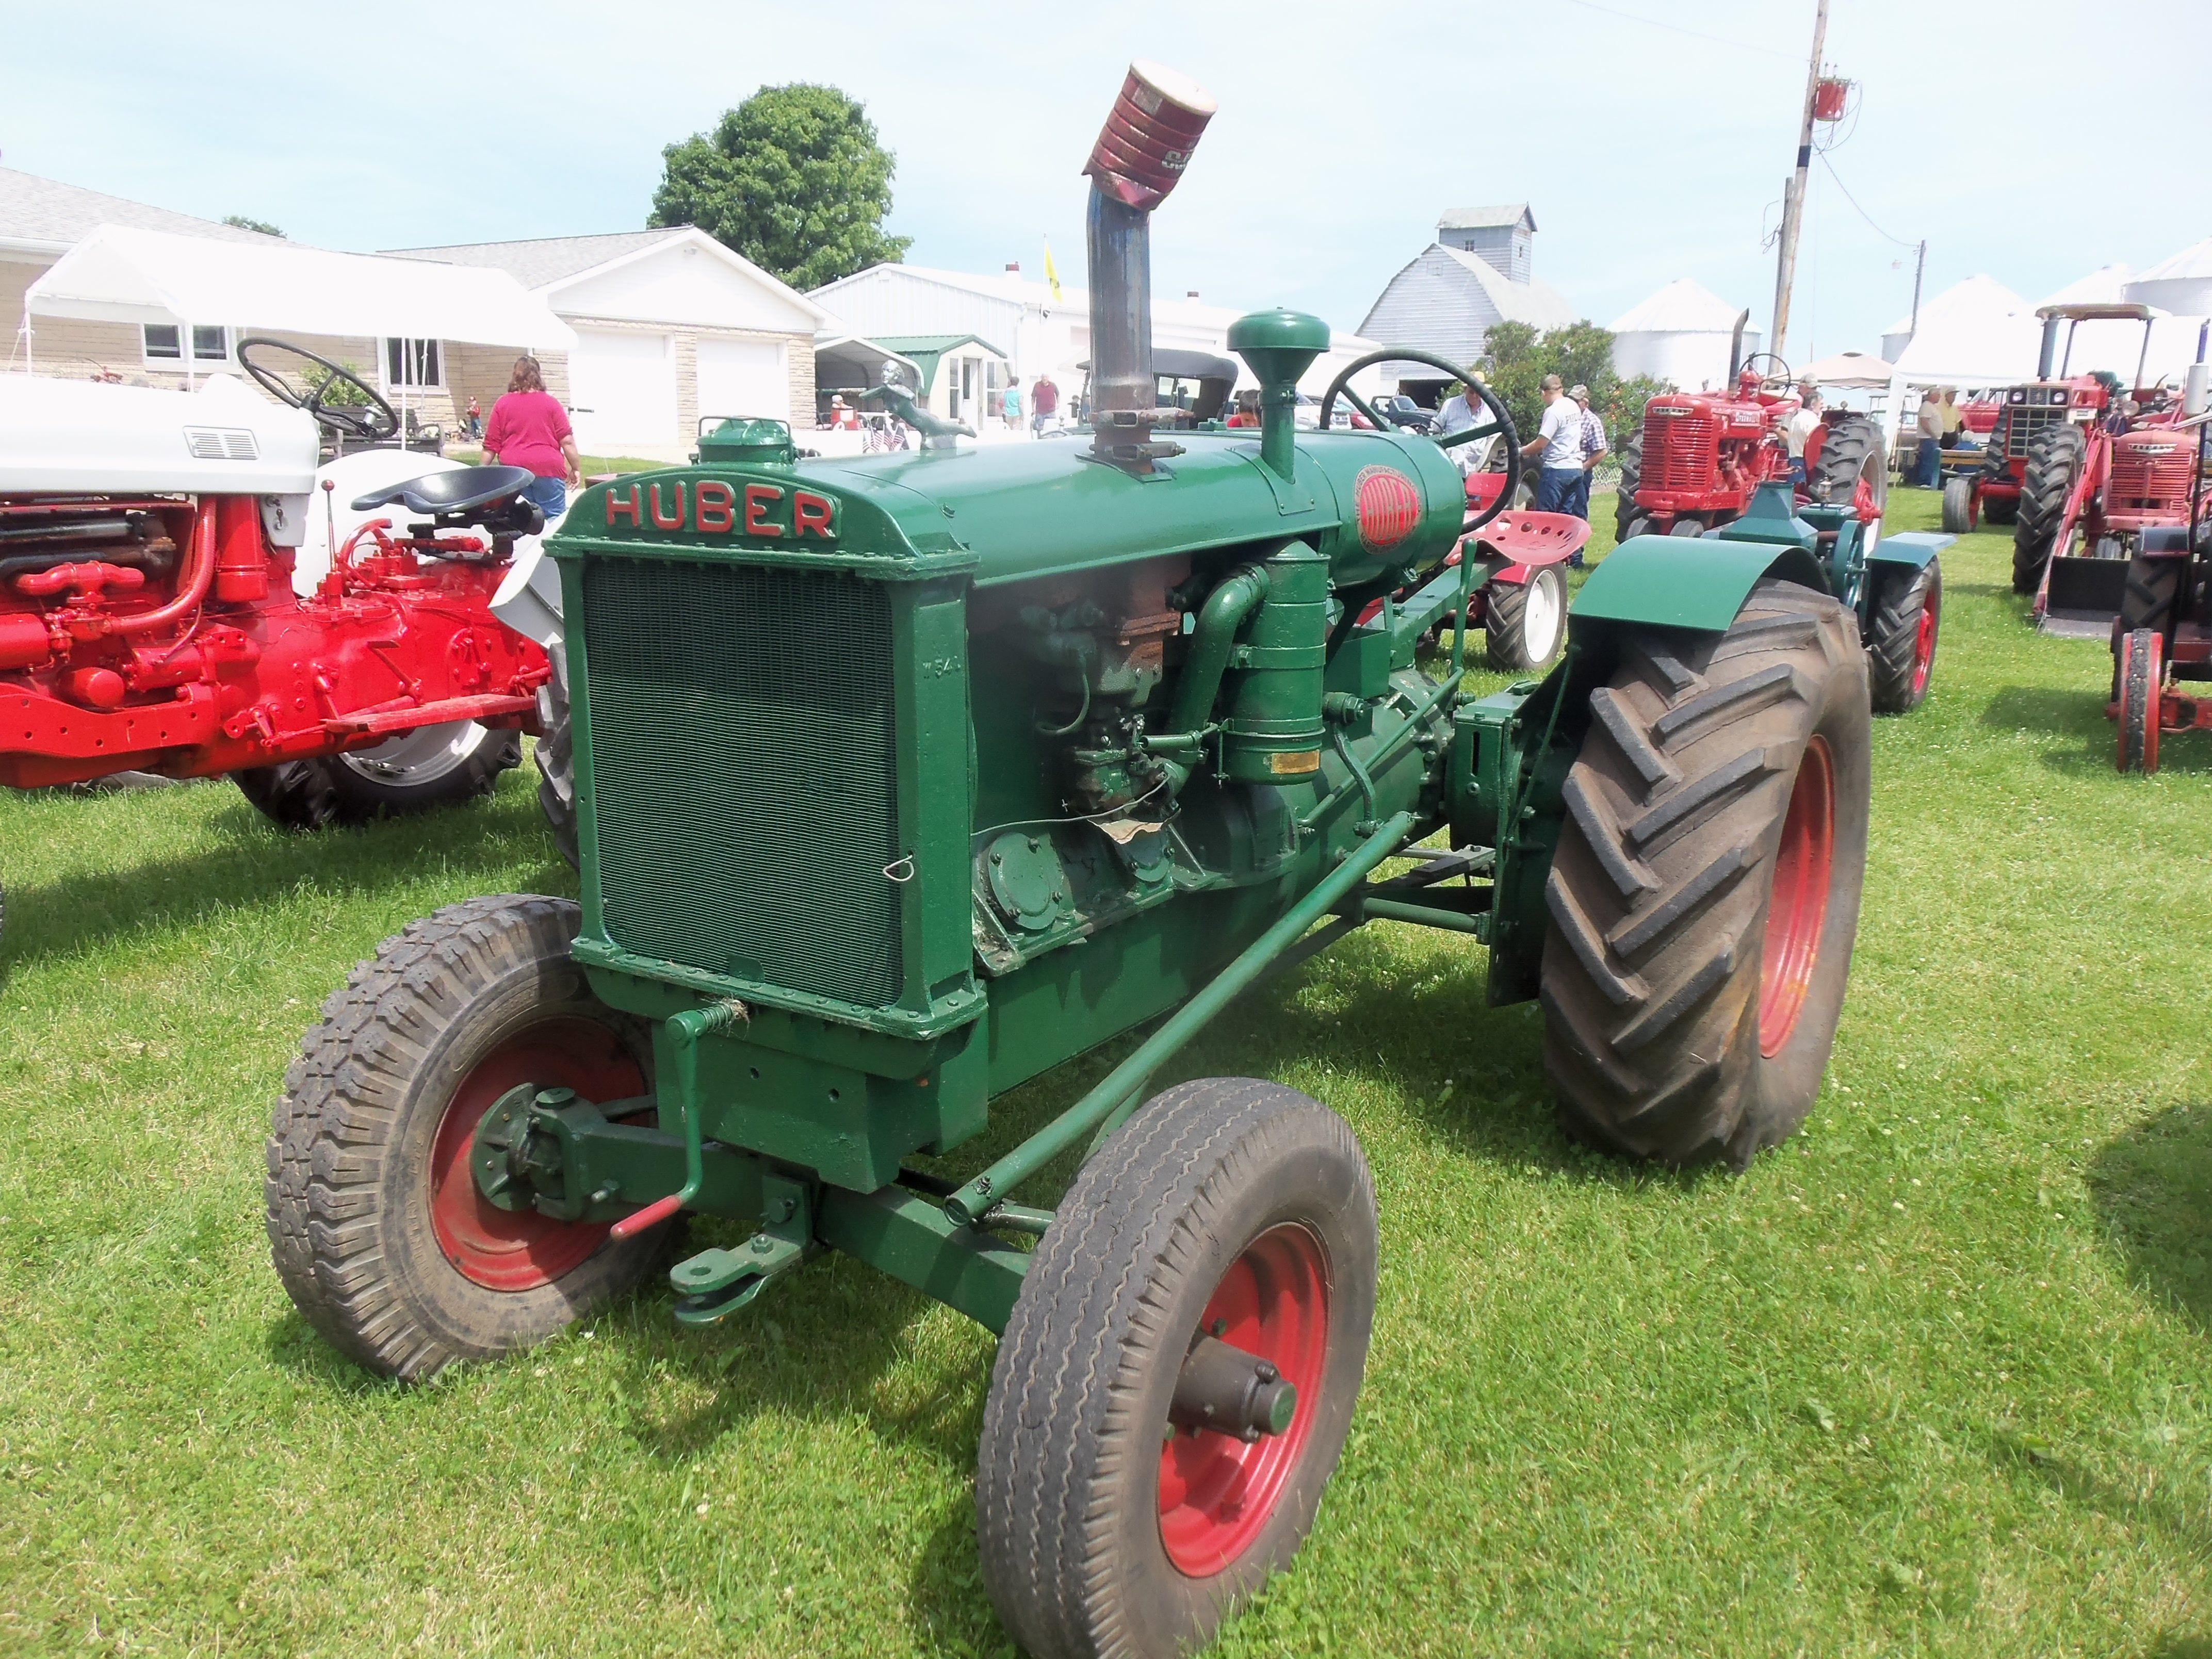 Antique Tractors In Ohio : Green huber tractor from marion ohio pinterest